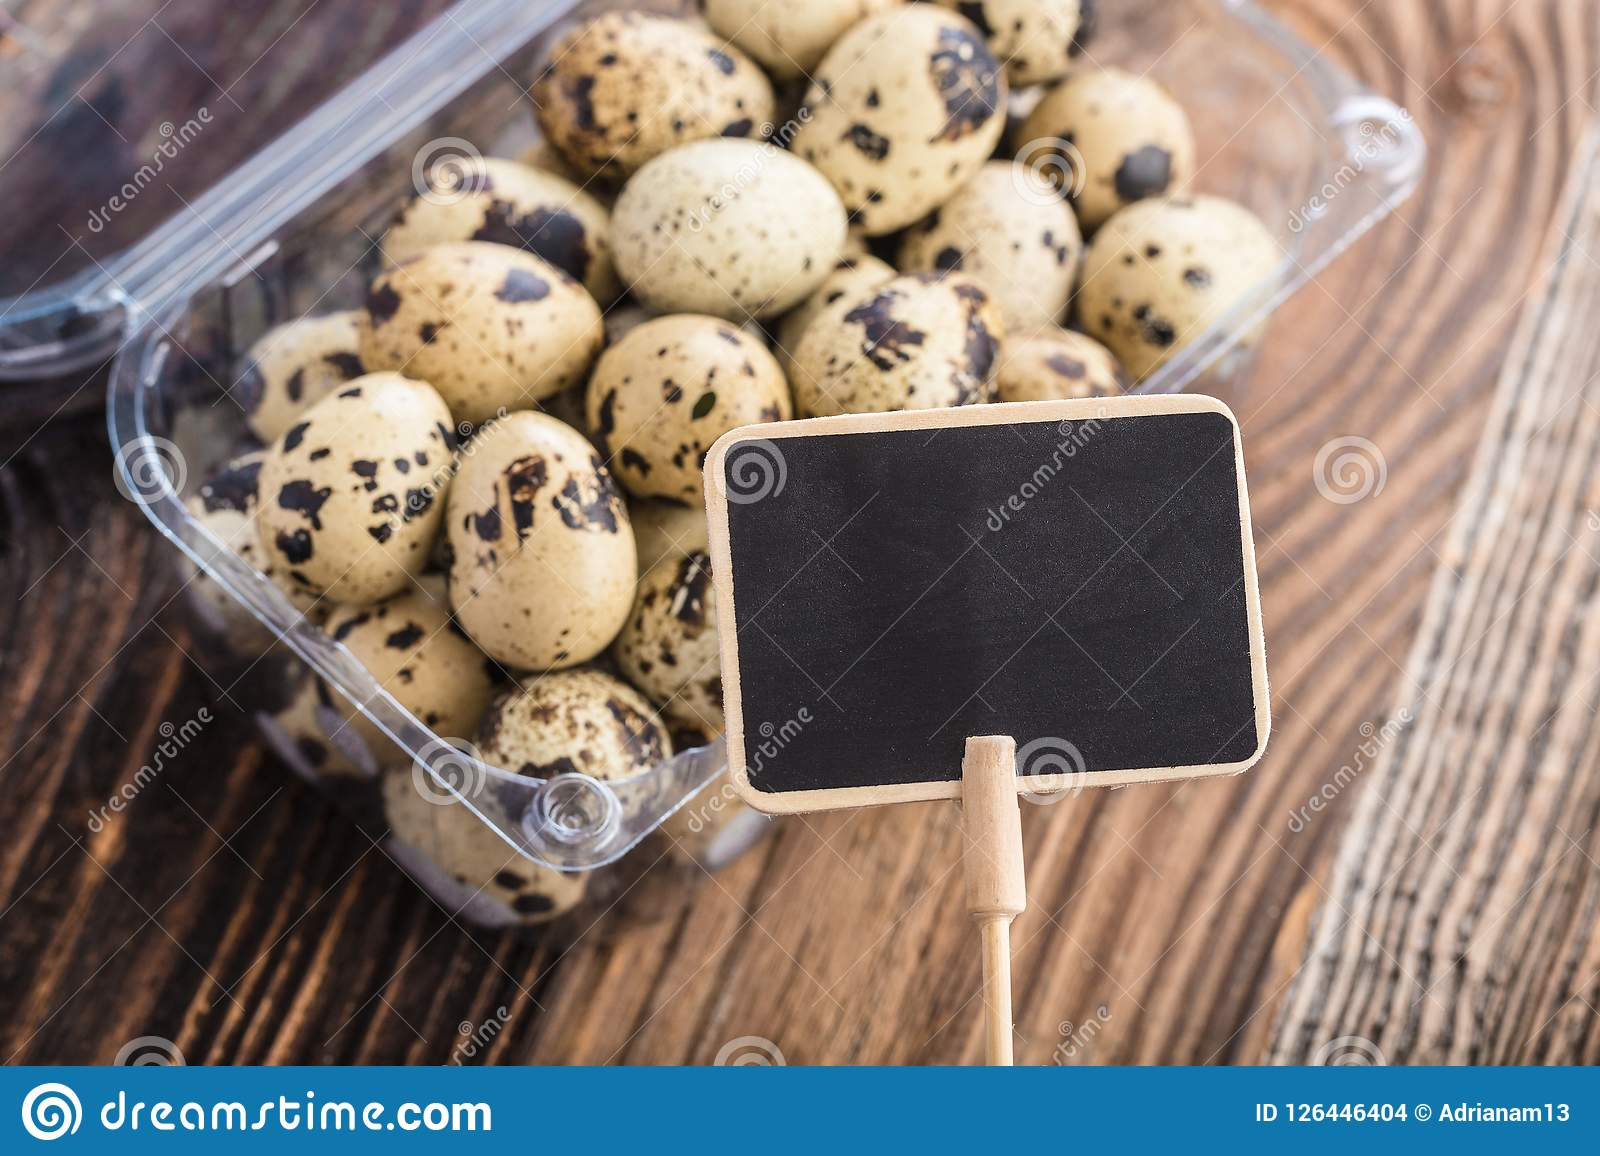 prize tag with quail eggs